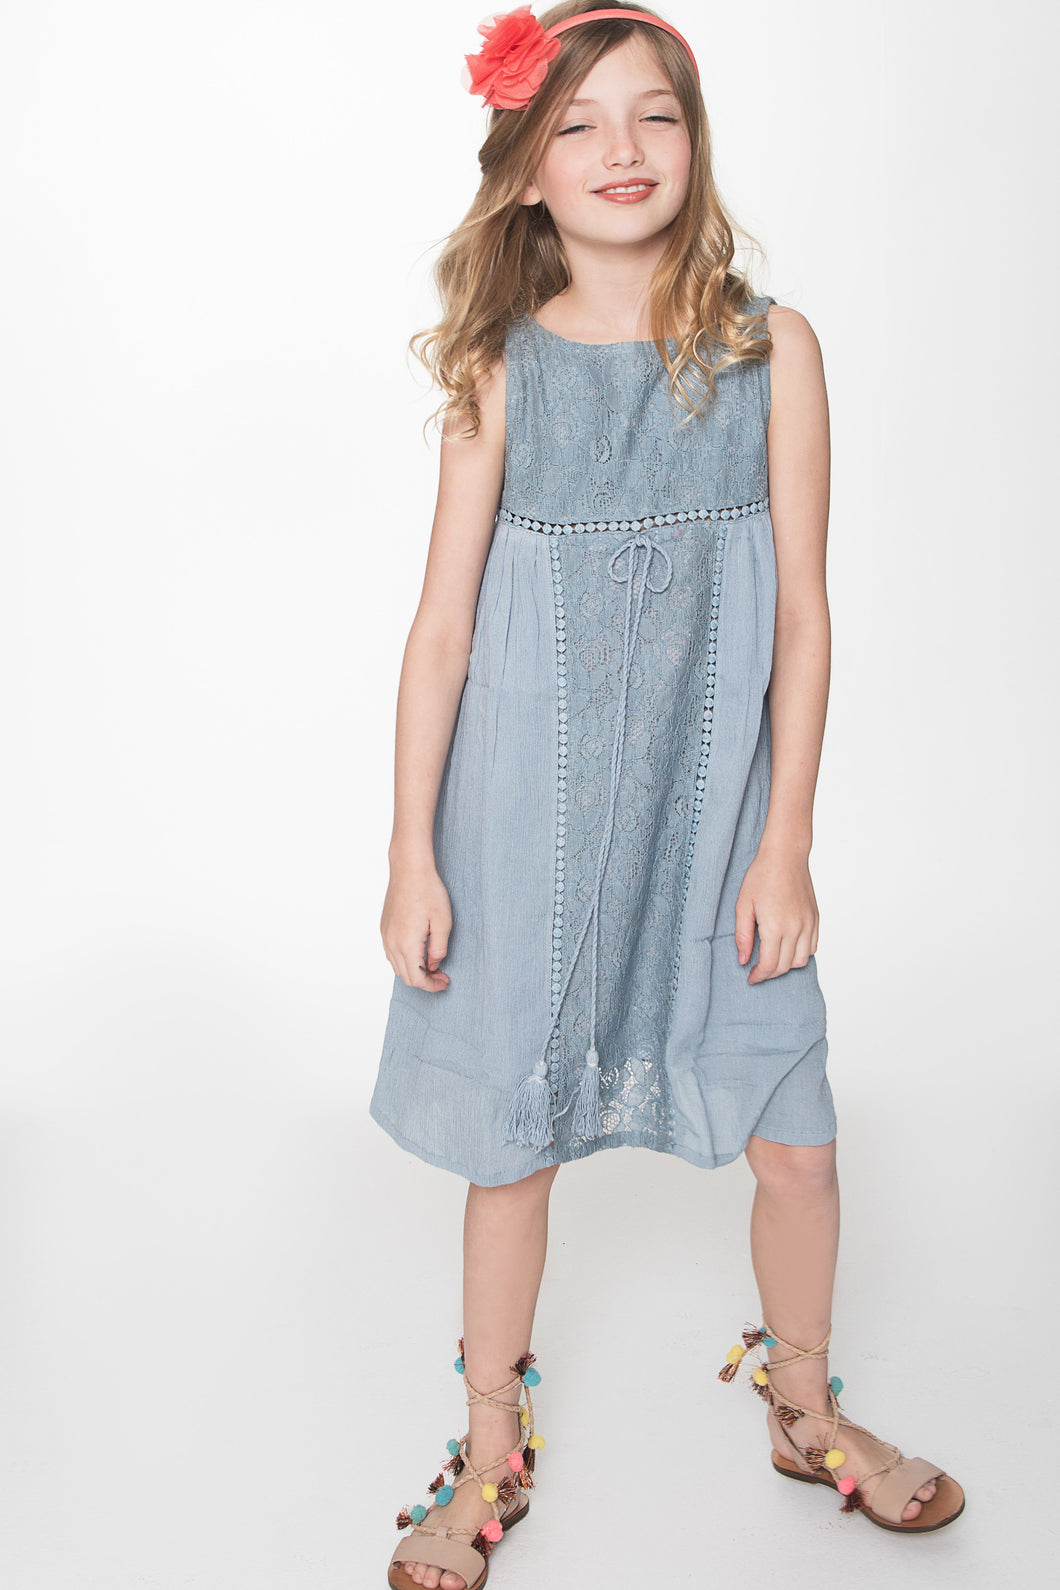 Powder Blue Lace Detail Dress - Kids Clothing, Dress - Girls Dress, Yo Baby Online - Yo Baby